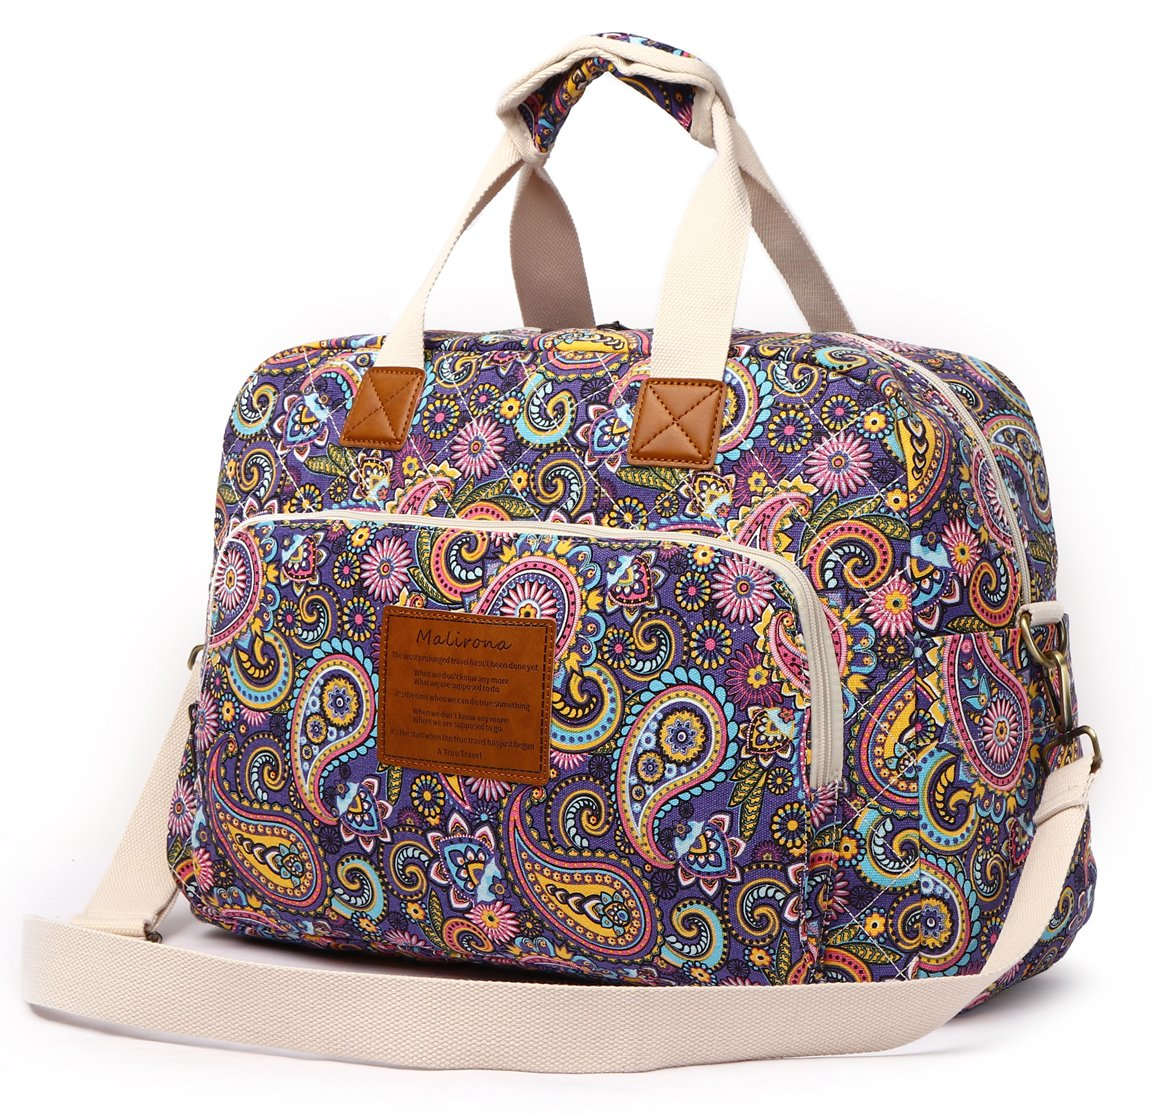 Malirona Canvas Overnight Bag Women Weekender Bag Carry On Travel Duffel Bag Floral (Purple Flower) by Malirona (Image #2)